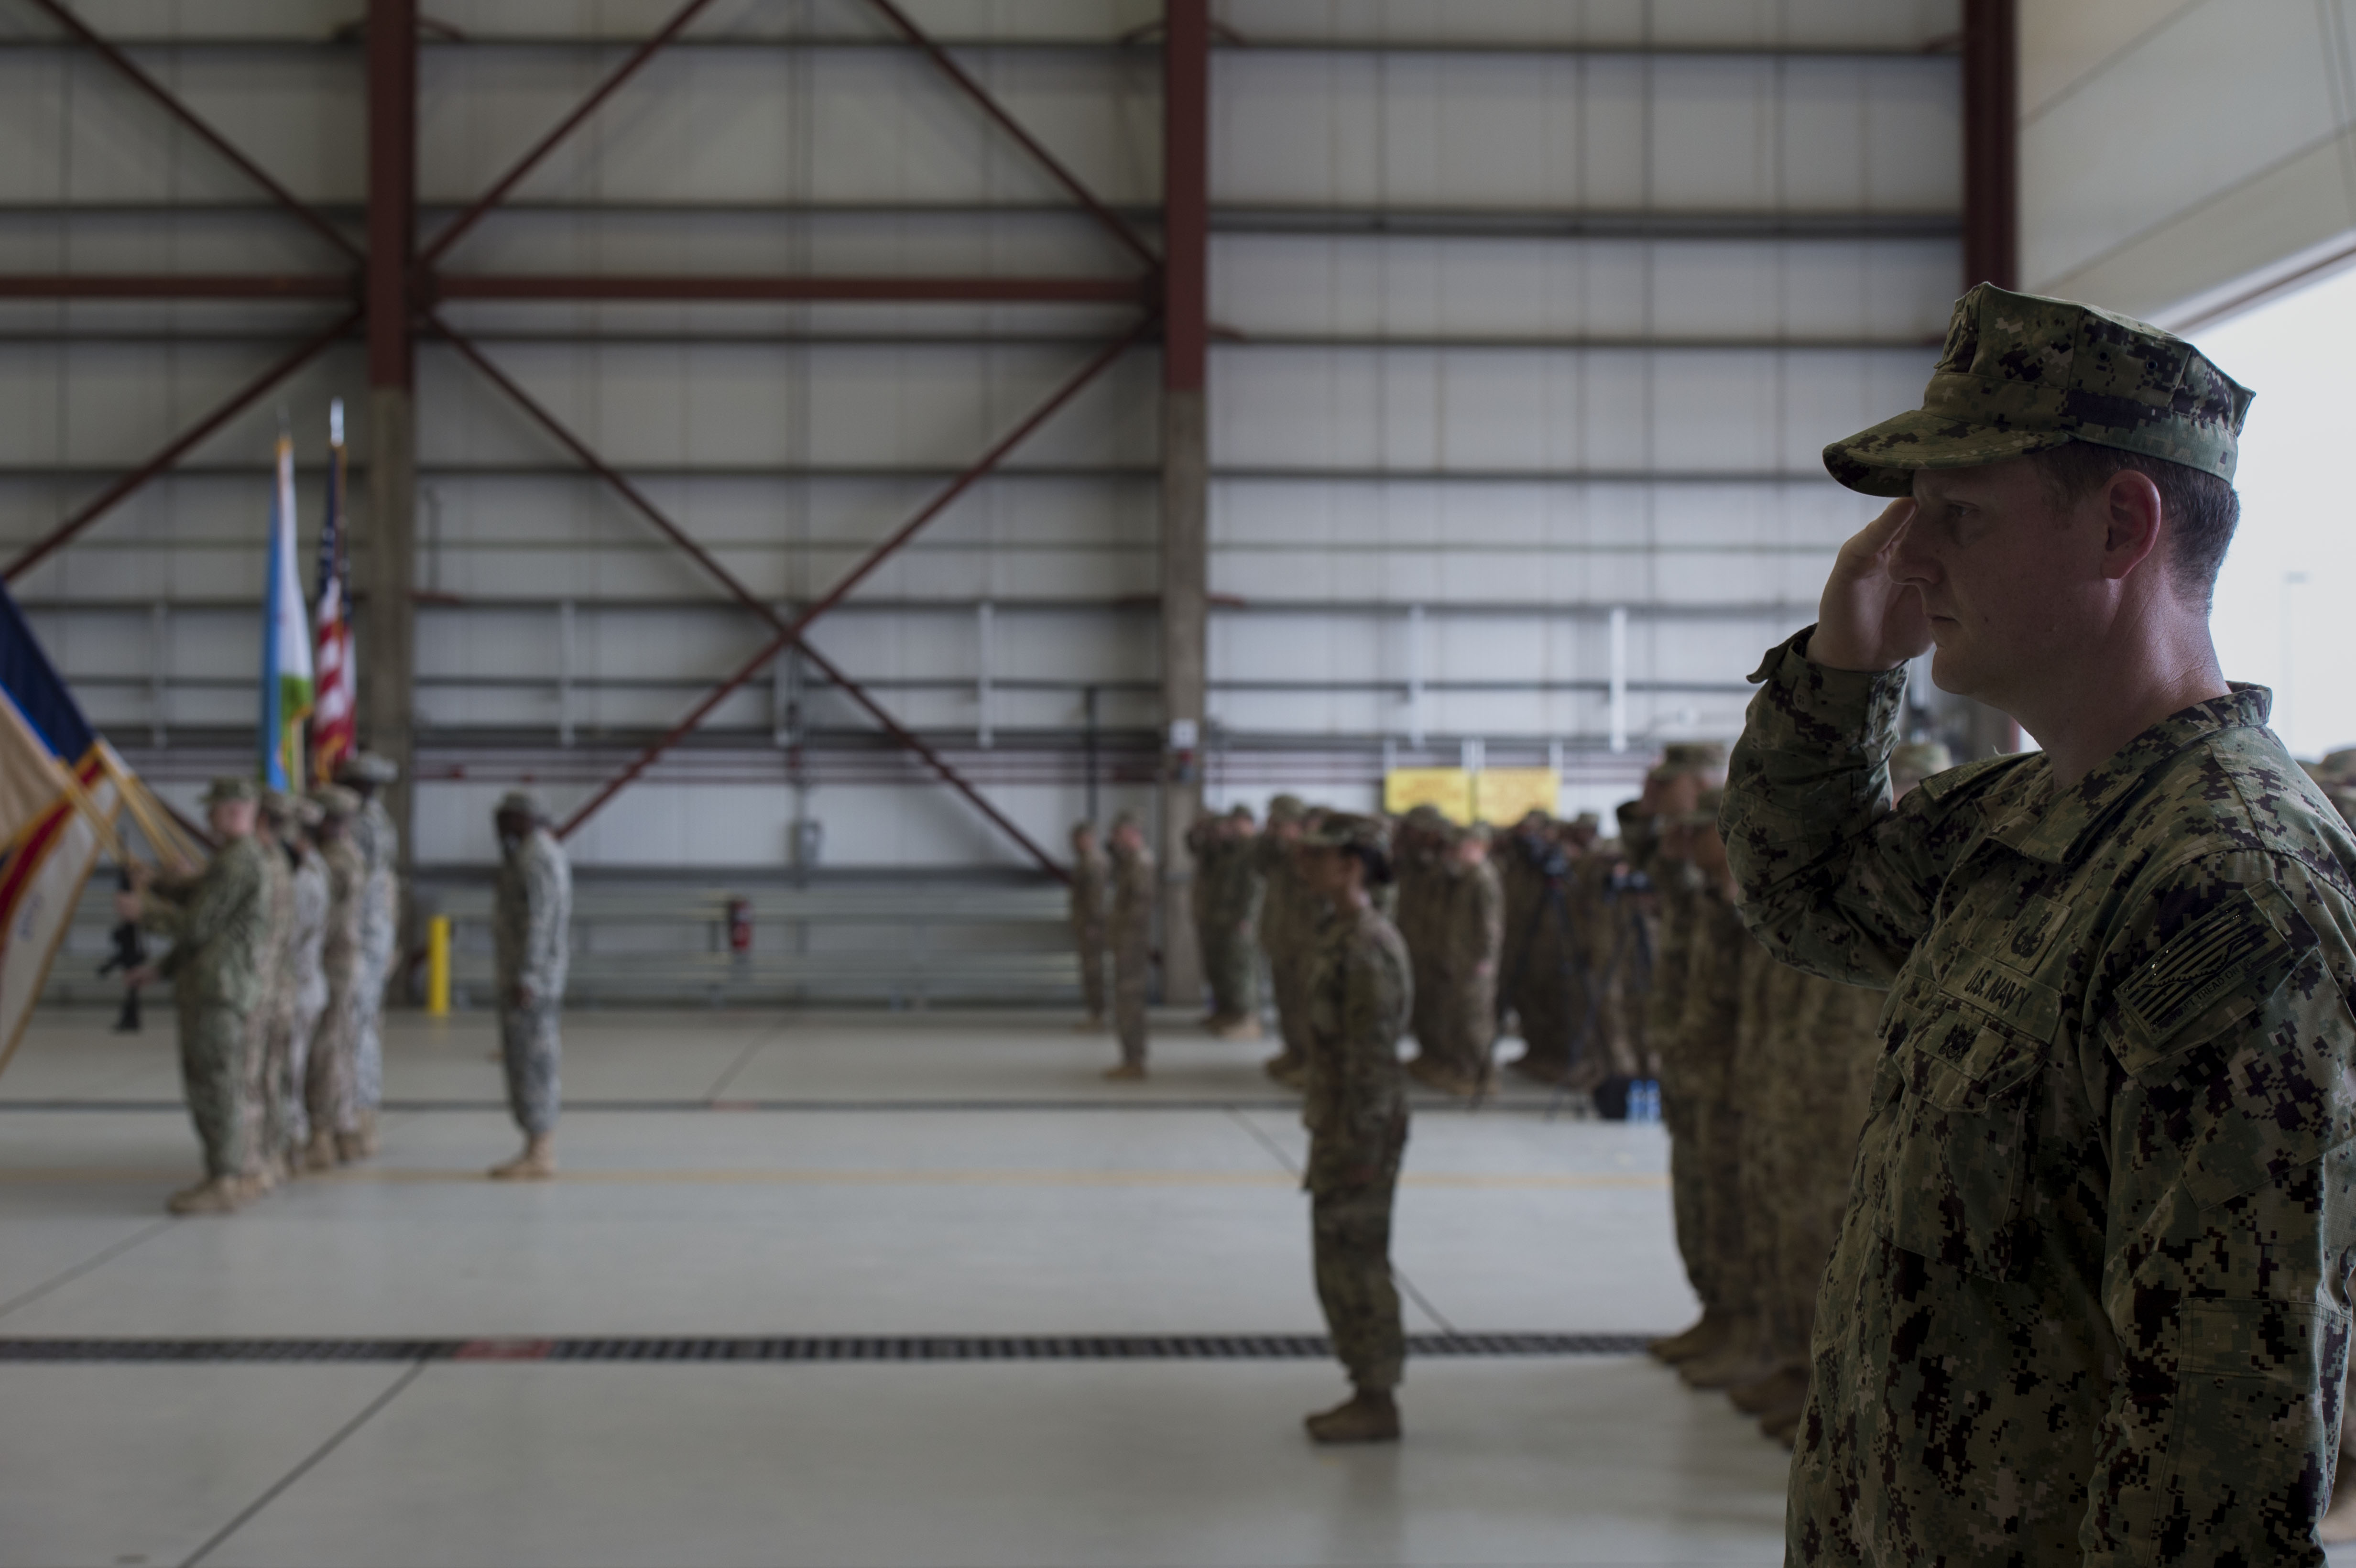 Members of Combined Joint Task Force-Horn of Africa salute while the U.S. and Djiboutian national anthems play during the CJTF-HOA change of command ceremony April 13, 2016, at Camp Lemonnier, Djibouti. U.S. Army Brig. Gen. Kurt Sonntag assumed command of CJTF-HOA from previous commander Maj. Gen. Mark Stammer. (U.S. Air Force photo by Staff Sgt. Eric Summers Jr.)